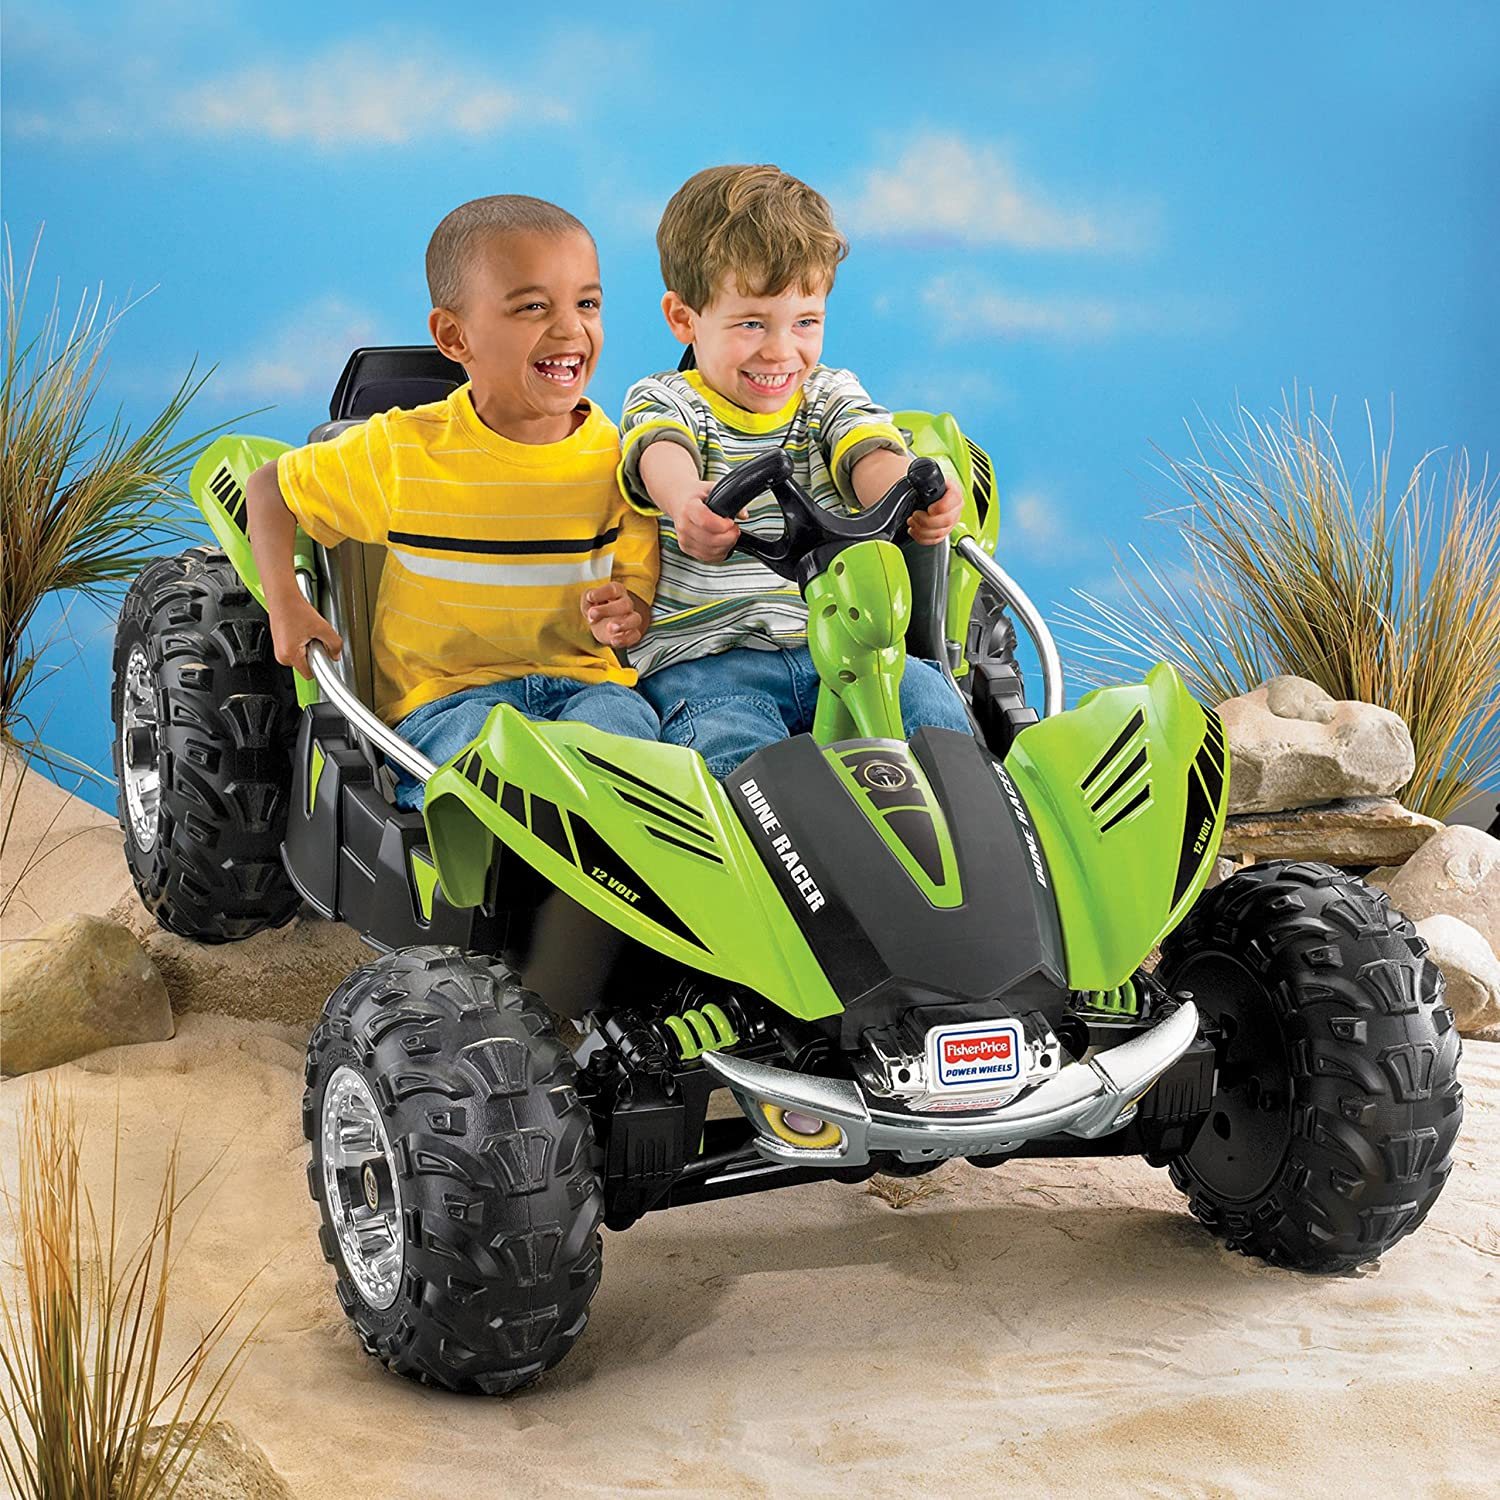 Power Wheels Dune Racer: Best for driving